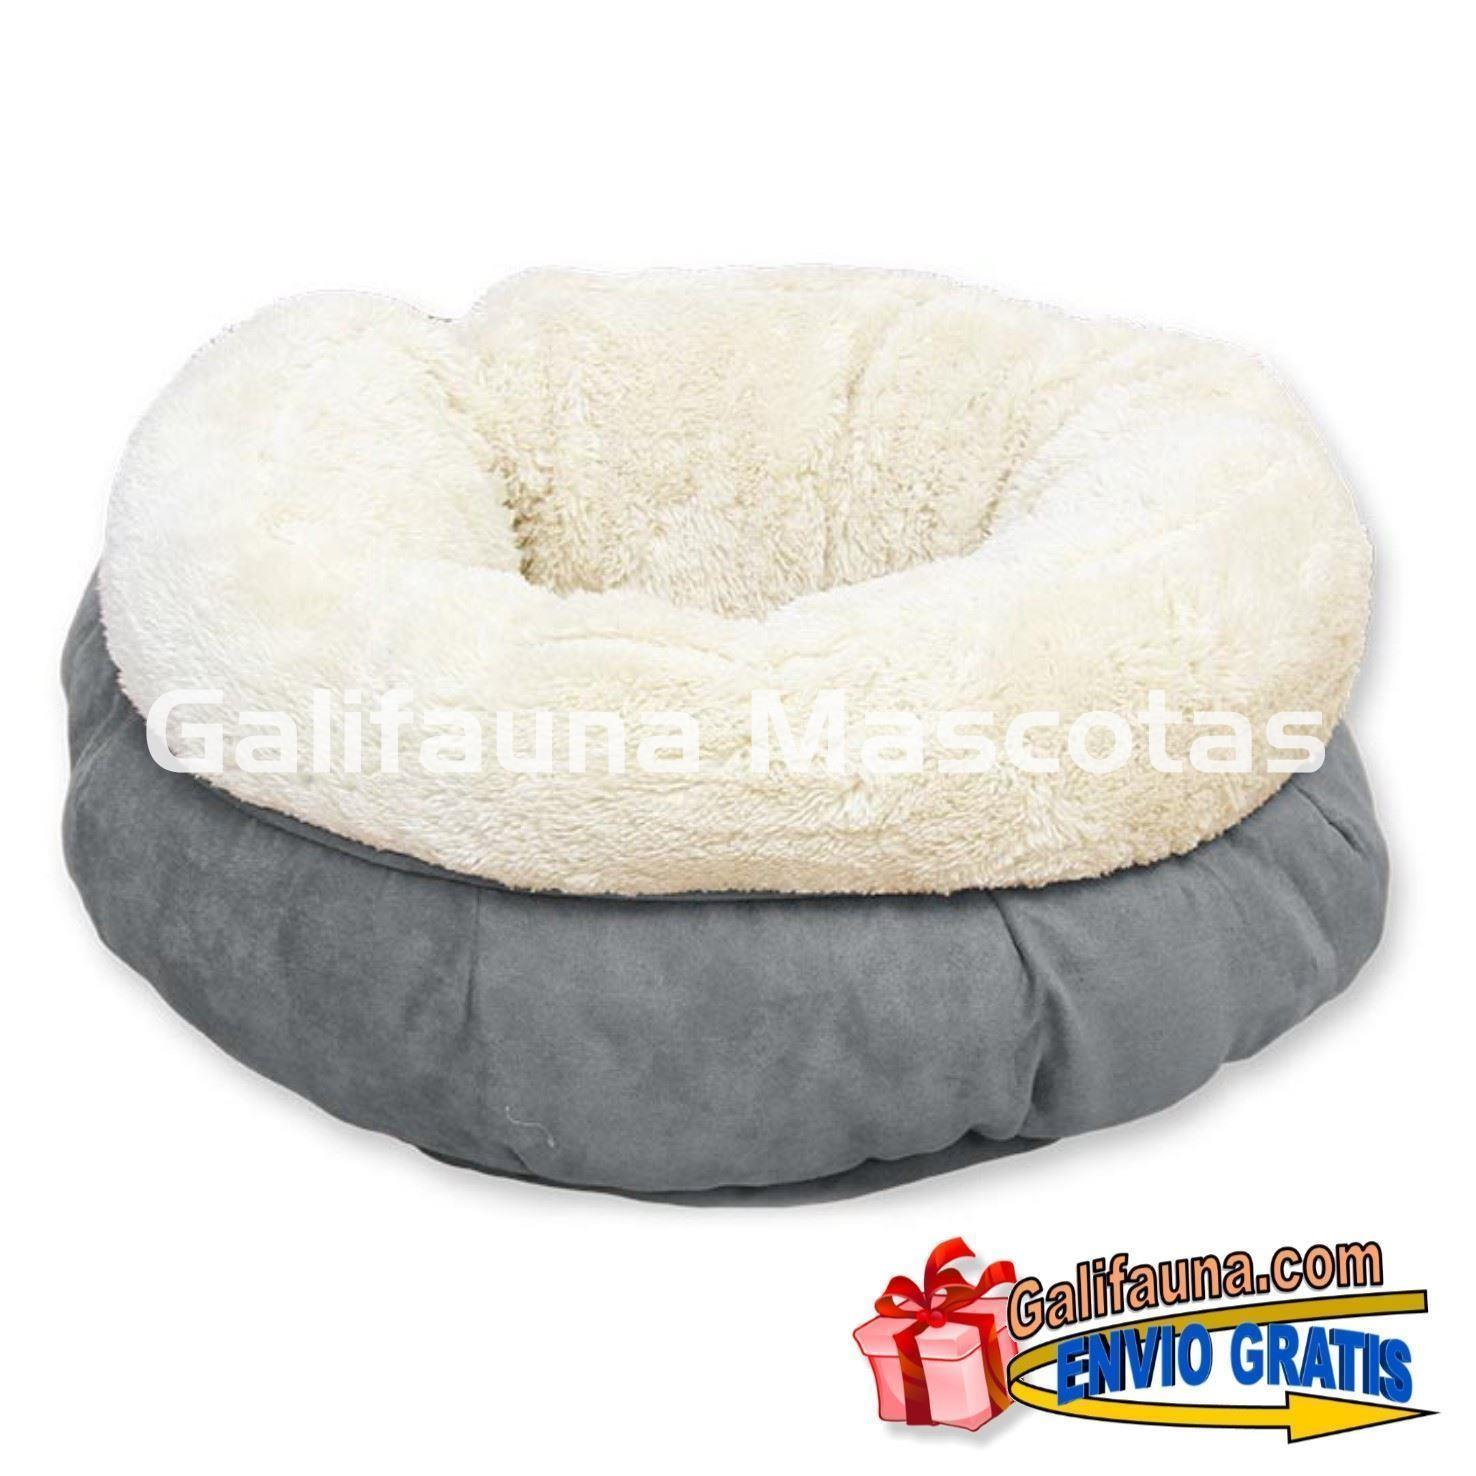 Cama DONUT LAM CAT para gatos de All for Paws CATIT - Imagen 1